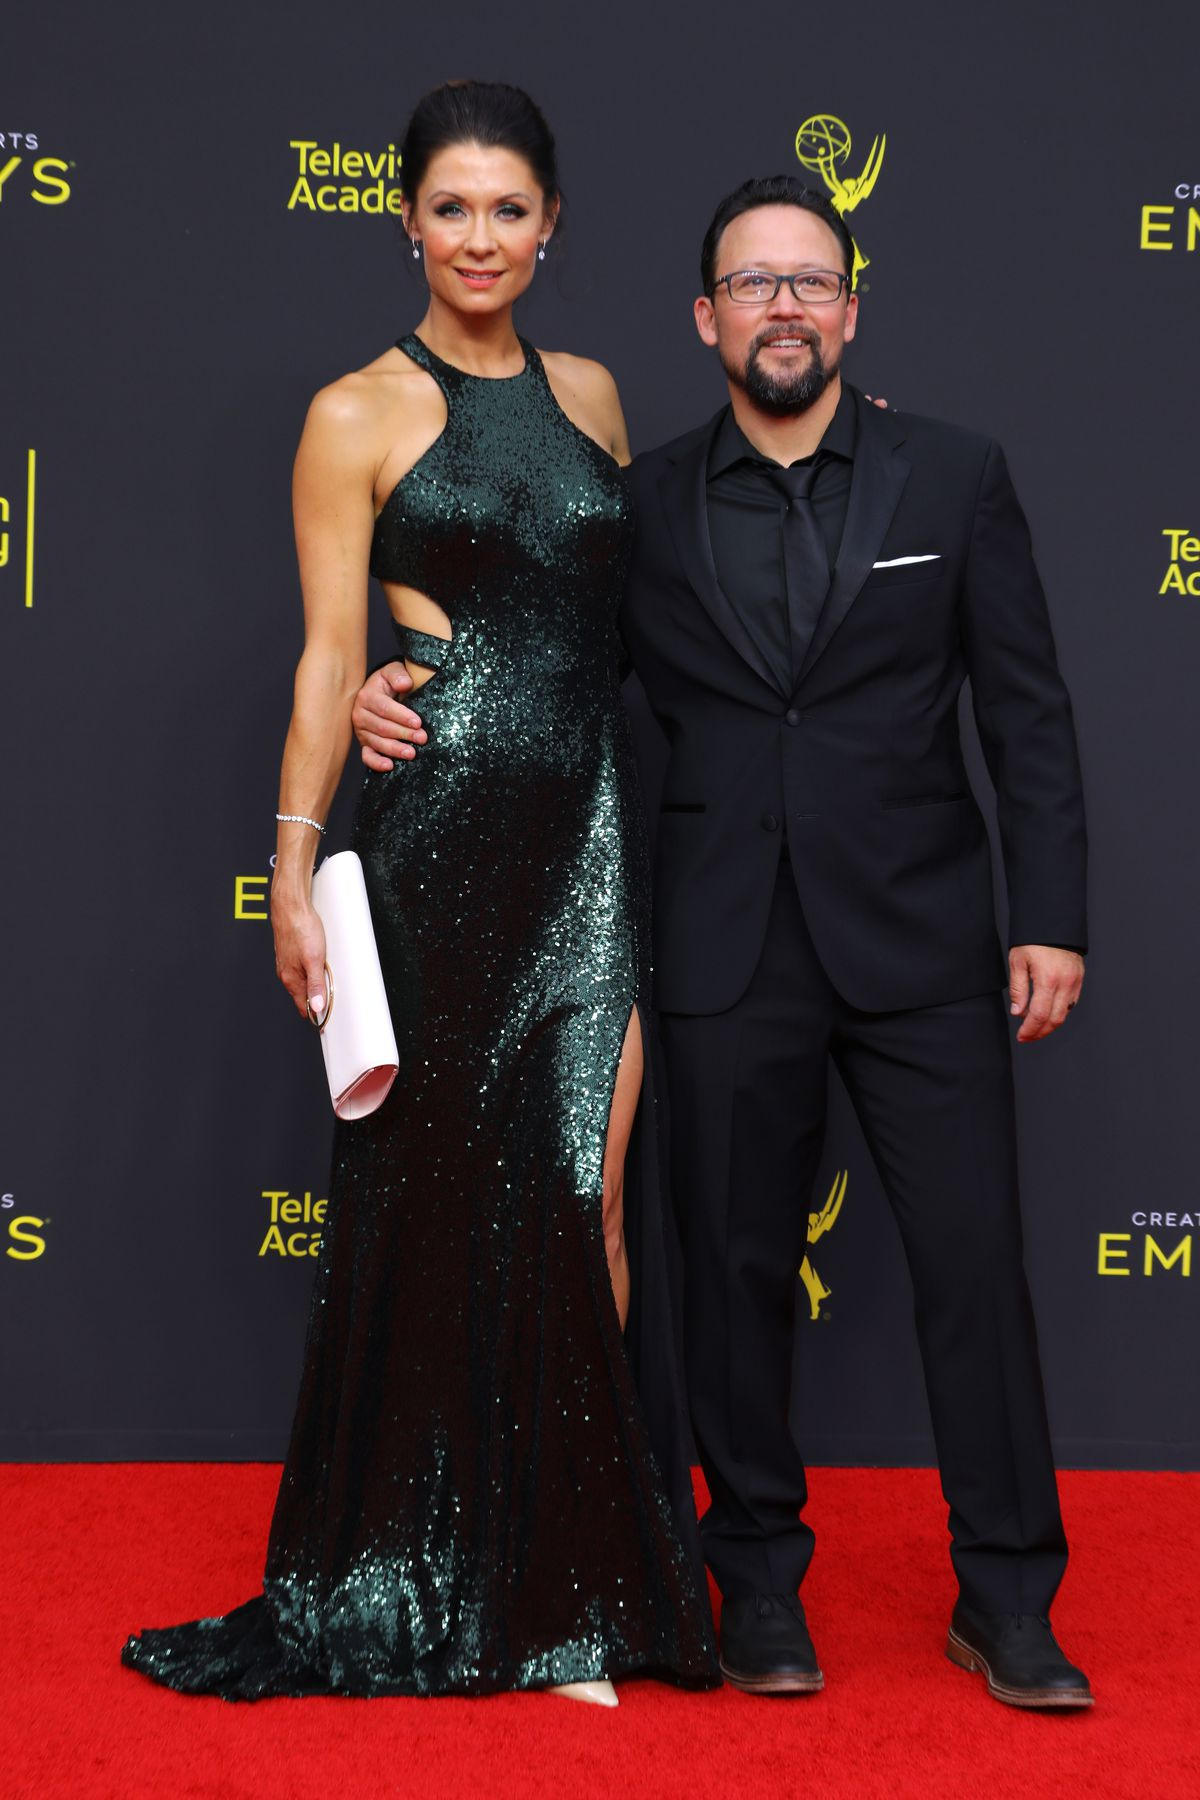 Jahnel Curfman and Hiro Koda attends the 2019 Creative Arts Emmy Awards on September 15, 2019 in Los Angeles, California.